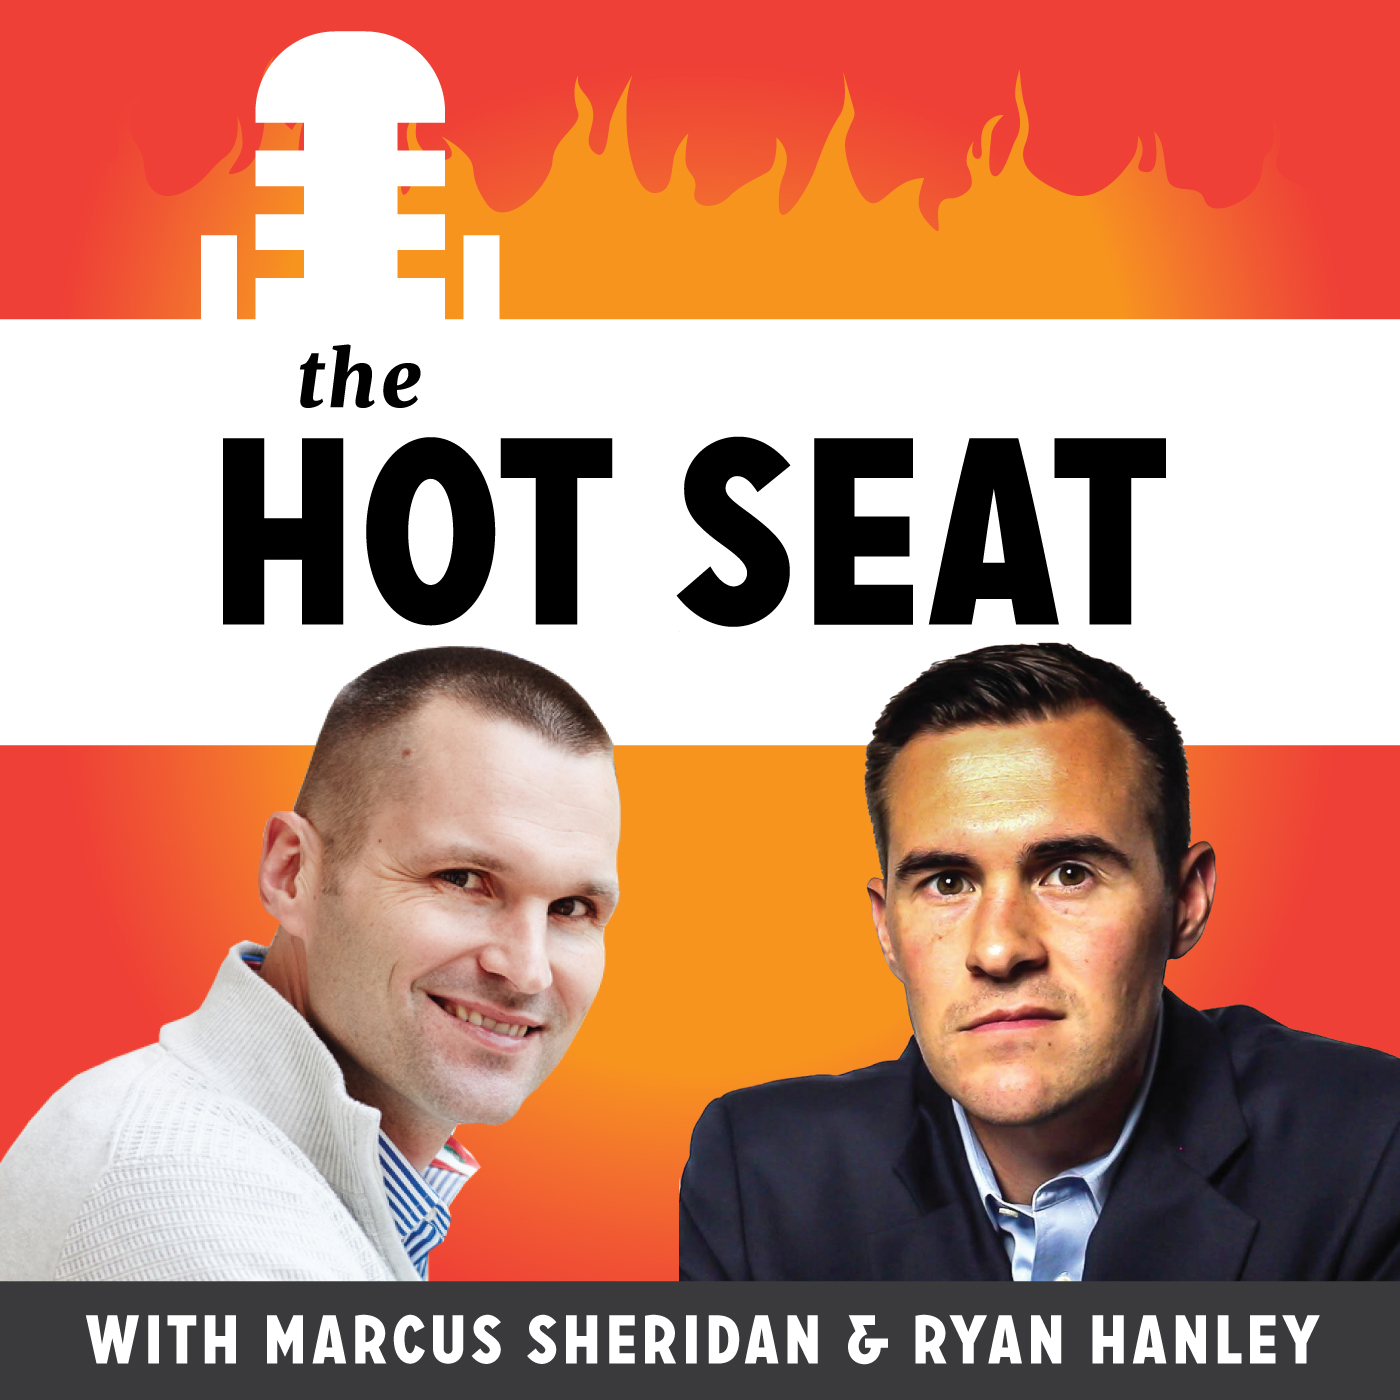 The Hot Seat Podcast: Marketing Strategy, Content Marketing, Growth Strategy